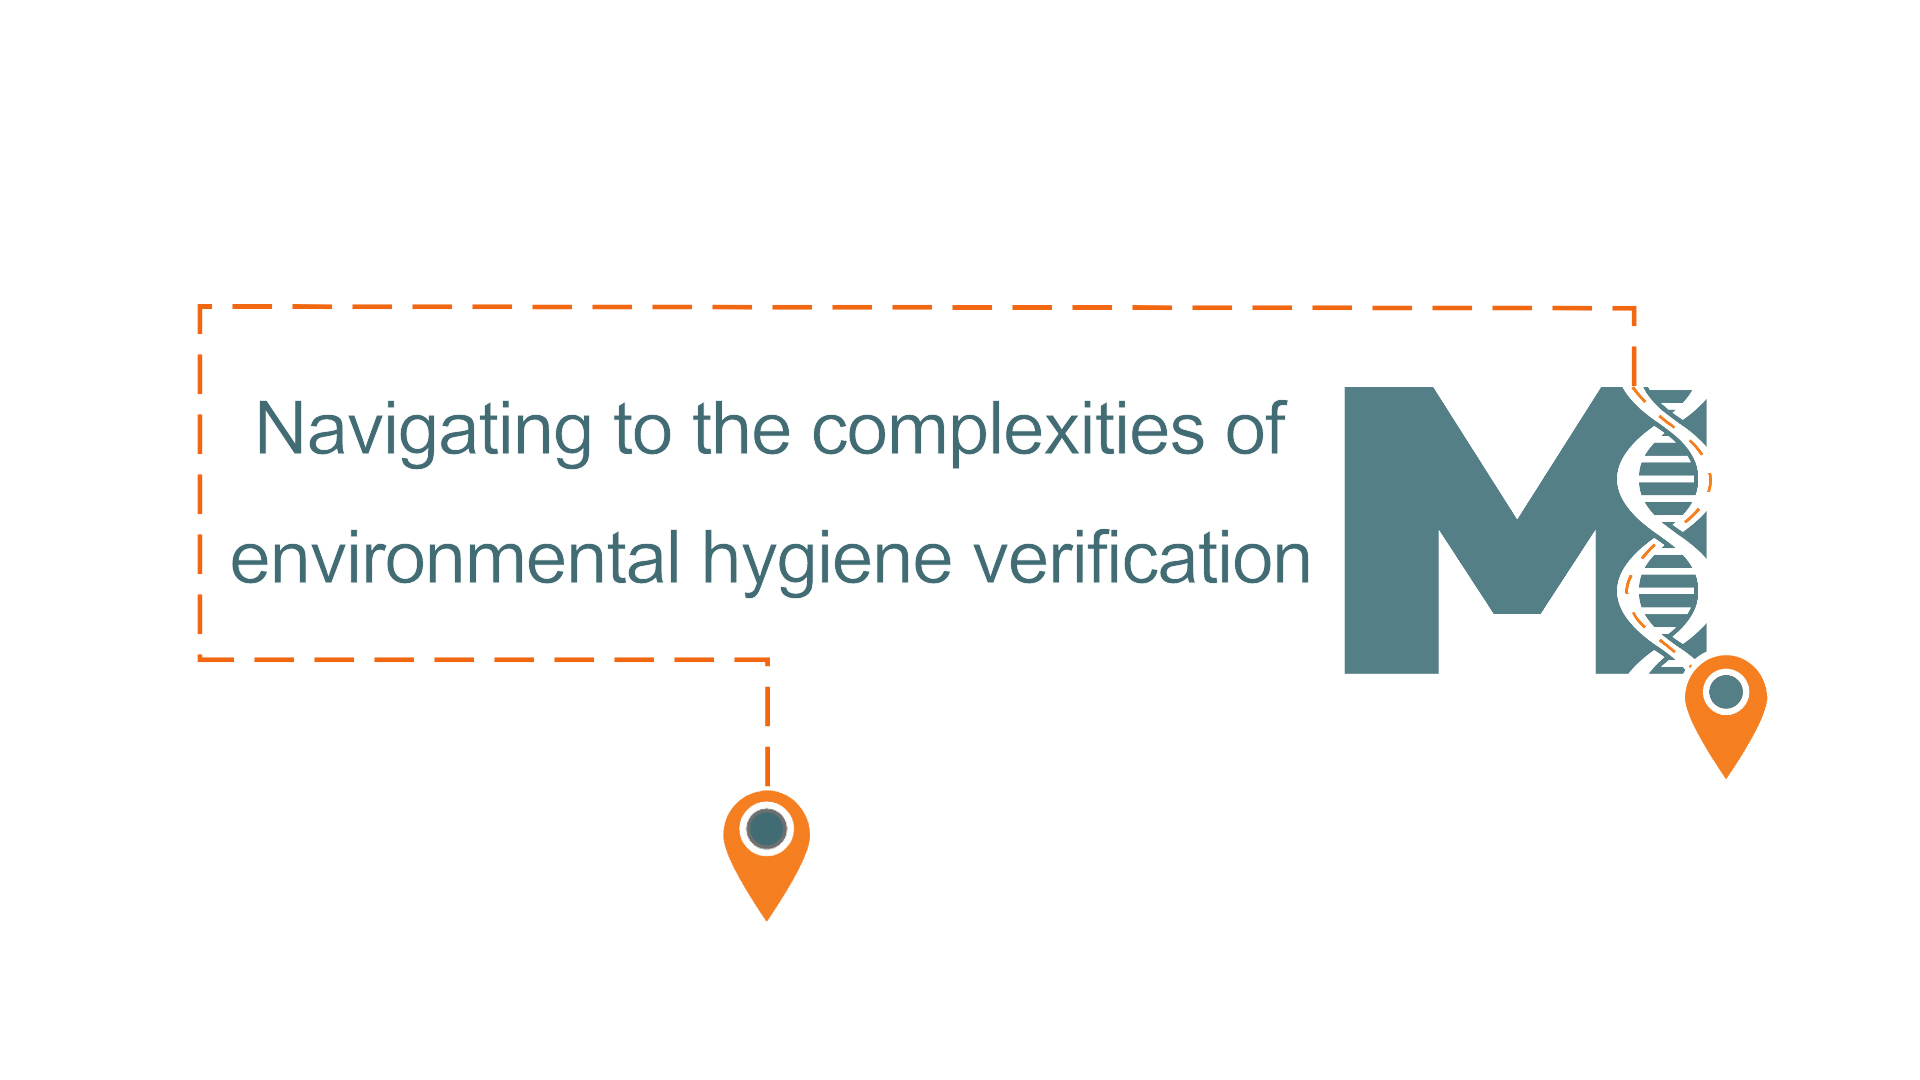 Navigating to the complexities of environmental hygiene verification